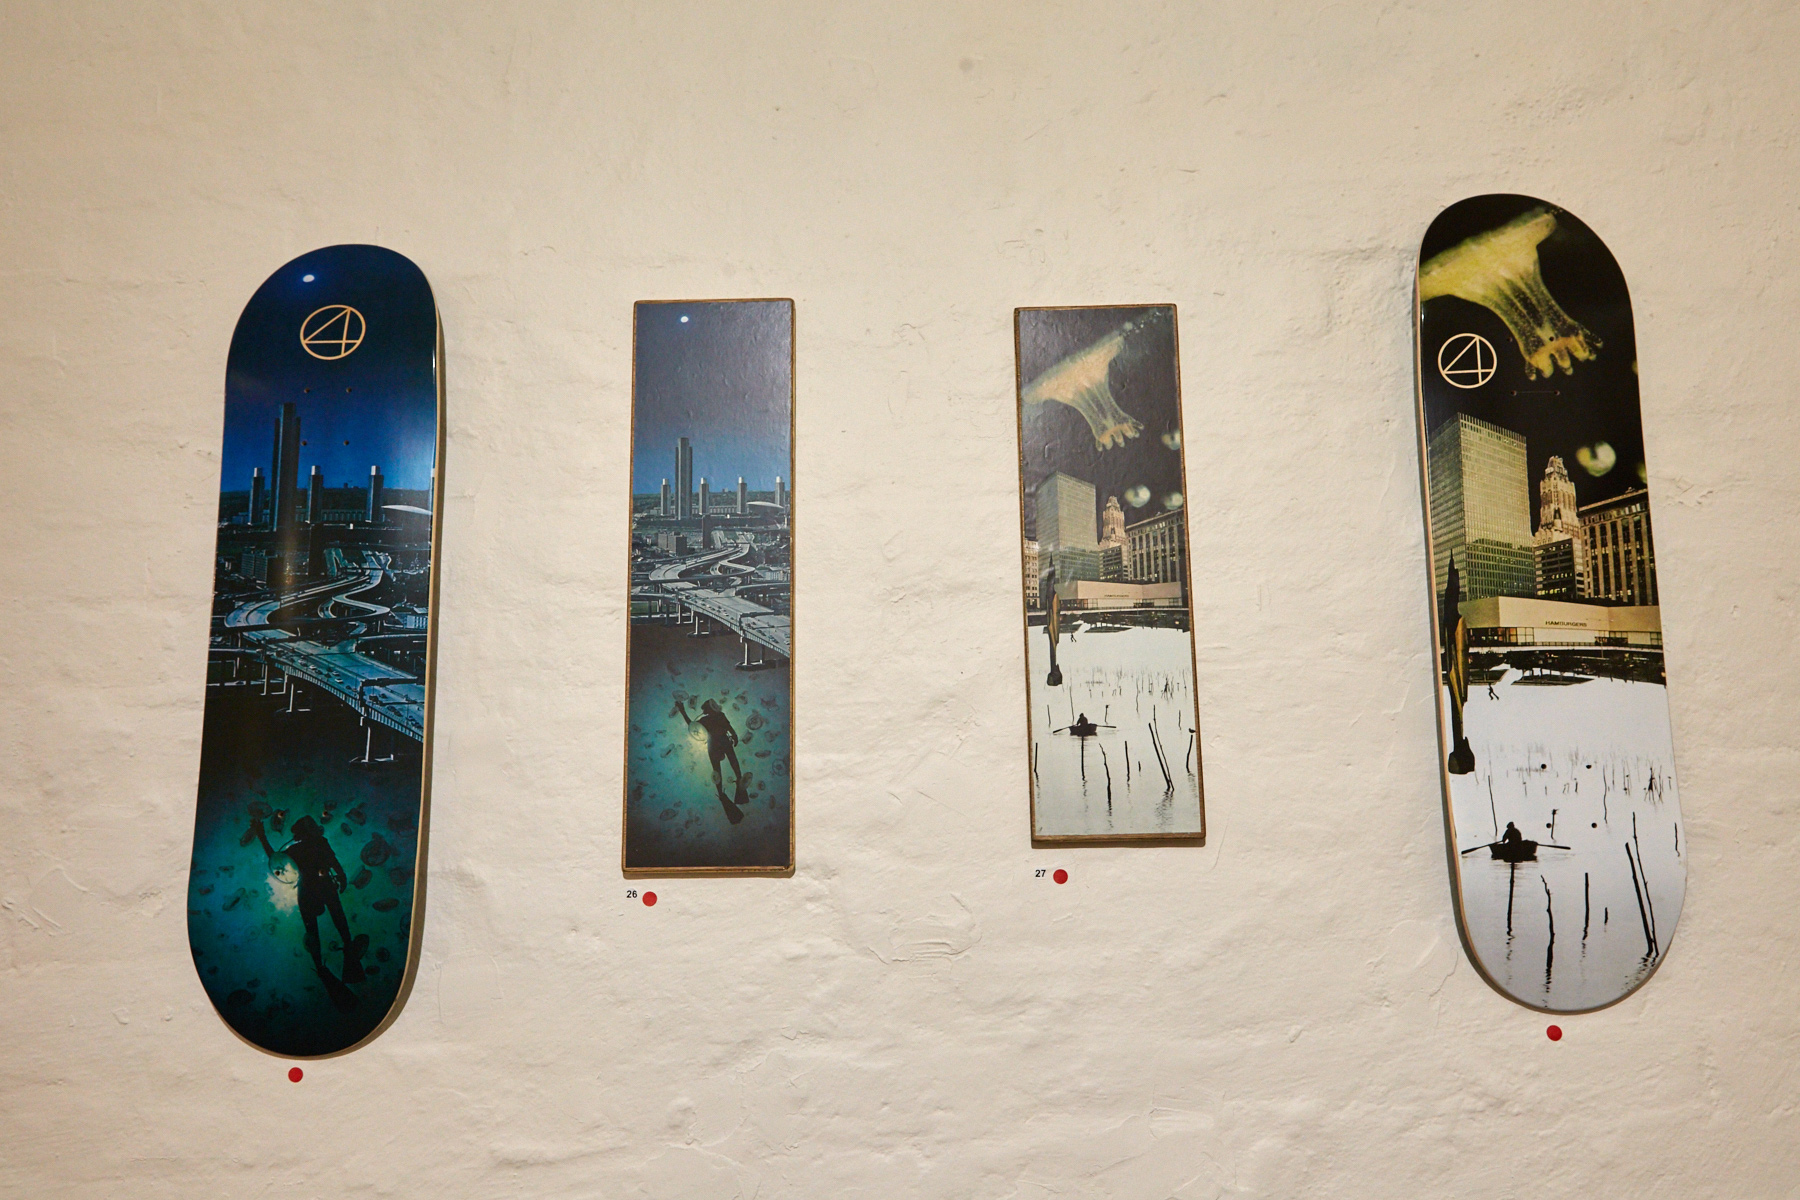 4-boards-and-collages-at-three-cities-melbourne--photo-daniel-luxford.jpg